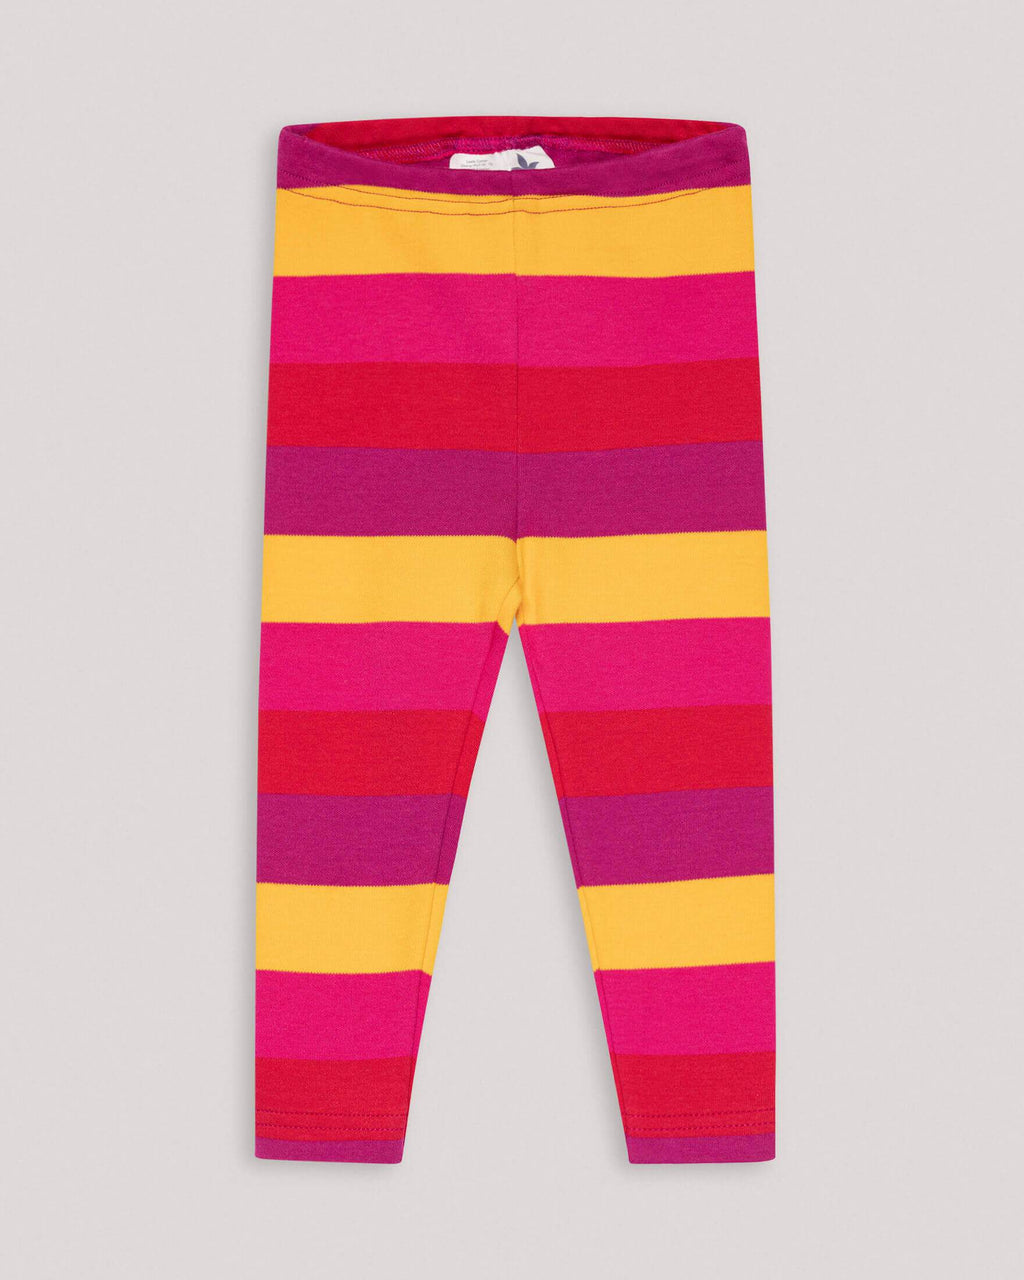 variant_3 | EN Red Yellow striped basic Leggings for kids and babies  | DE Rote gelbe gestreifte Leggings für kinder und babies